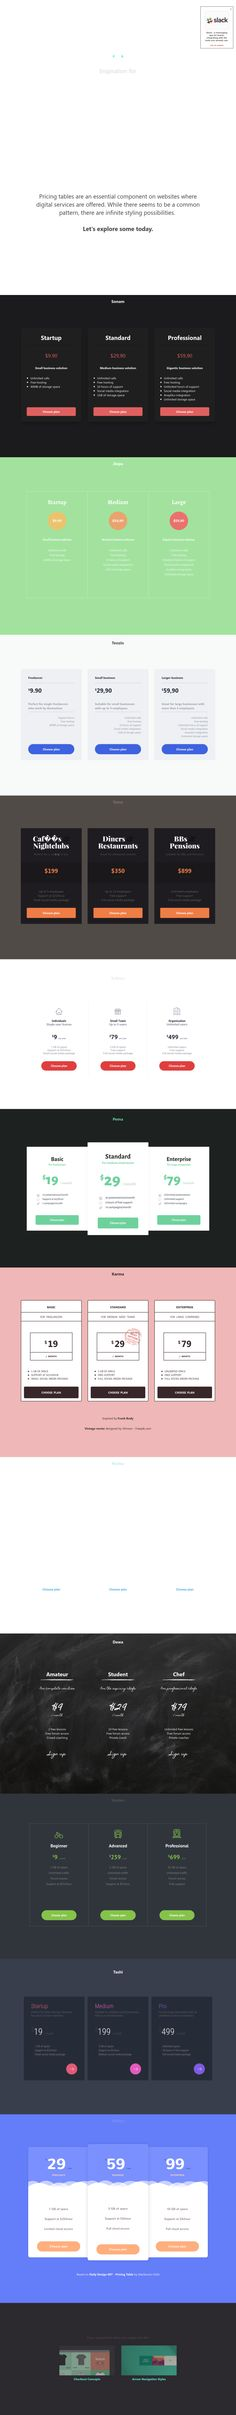 http://tympanus.net/codrops/2015/11/19/some-inspiration-for-pricing-tables/